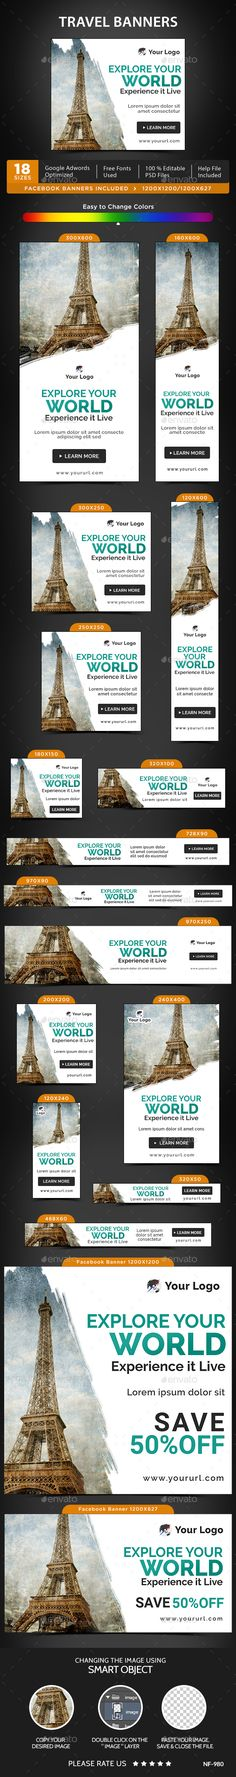 Travel Web Banners Template PSD #ads #promote Download: http://graphicriver.net/item/travel-banners/14391763?ref=ksioks